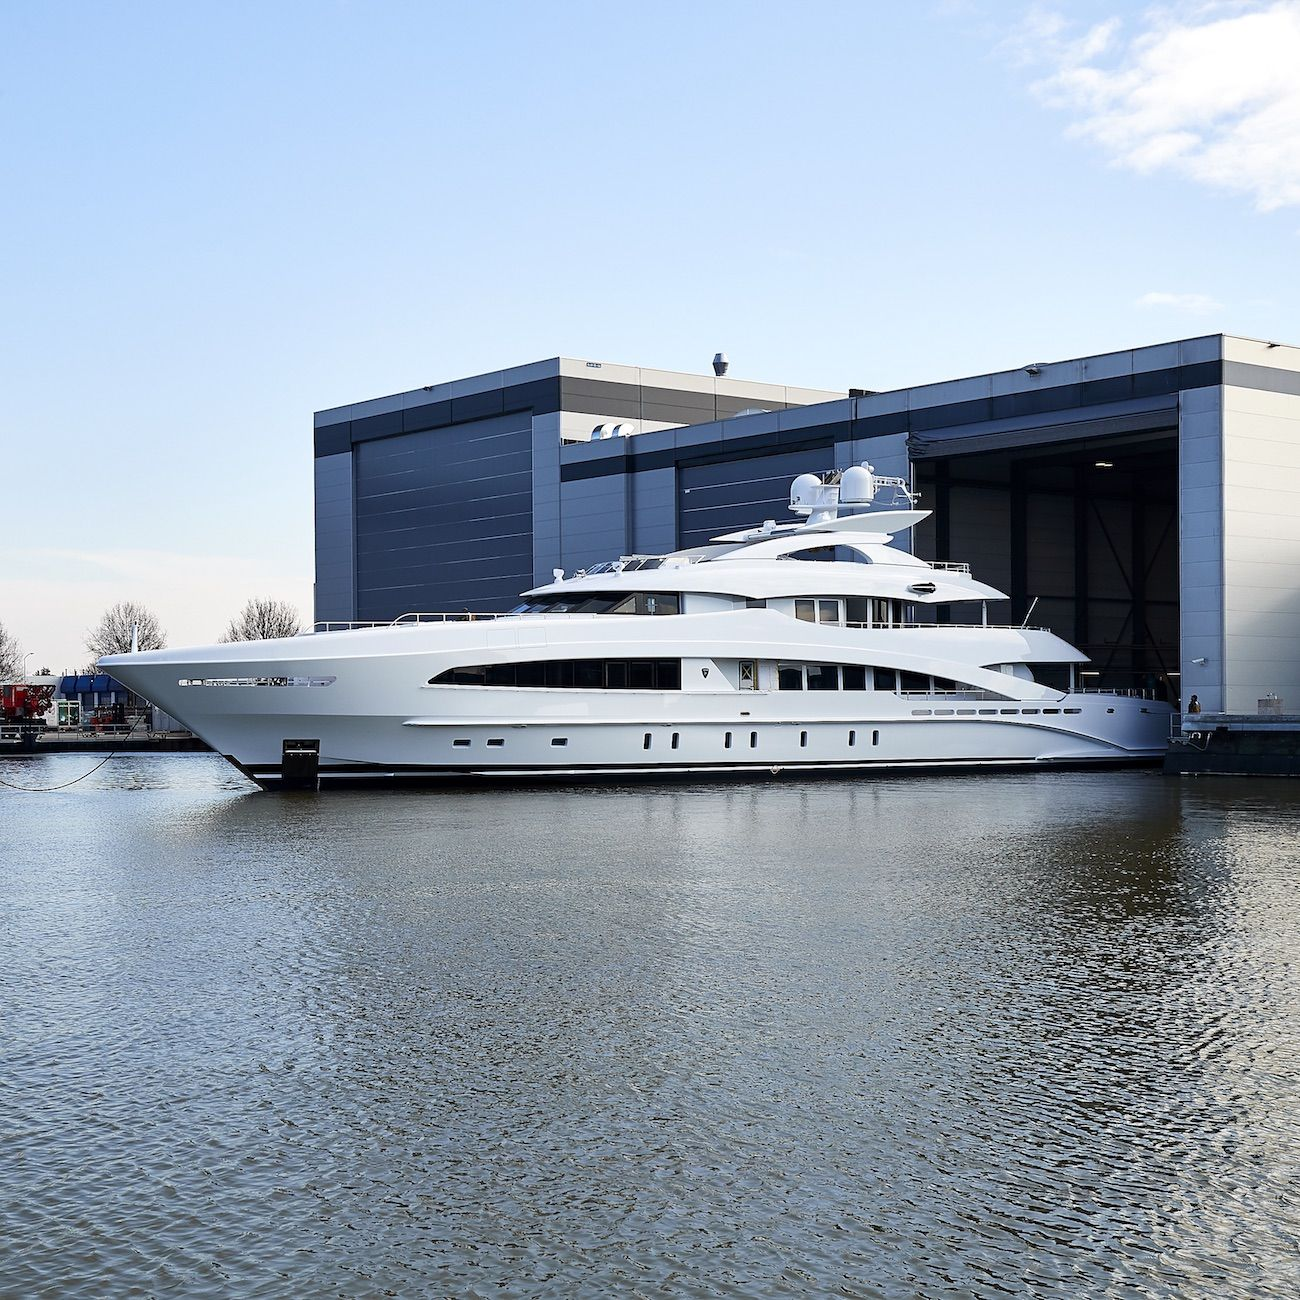 50m Superyacht White By Heesen Frank Laupman Of Omega Architects And Cristiano Gatto Design Launched Luxury Yachts Yacht Design Motor Yacht